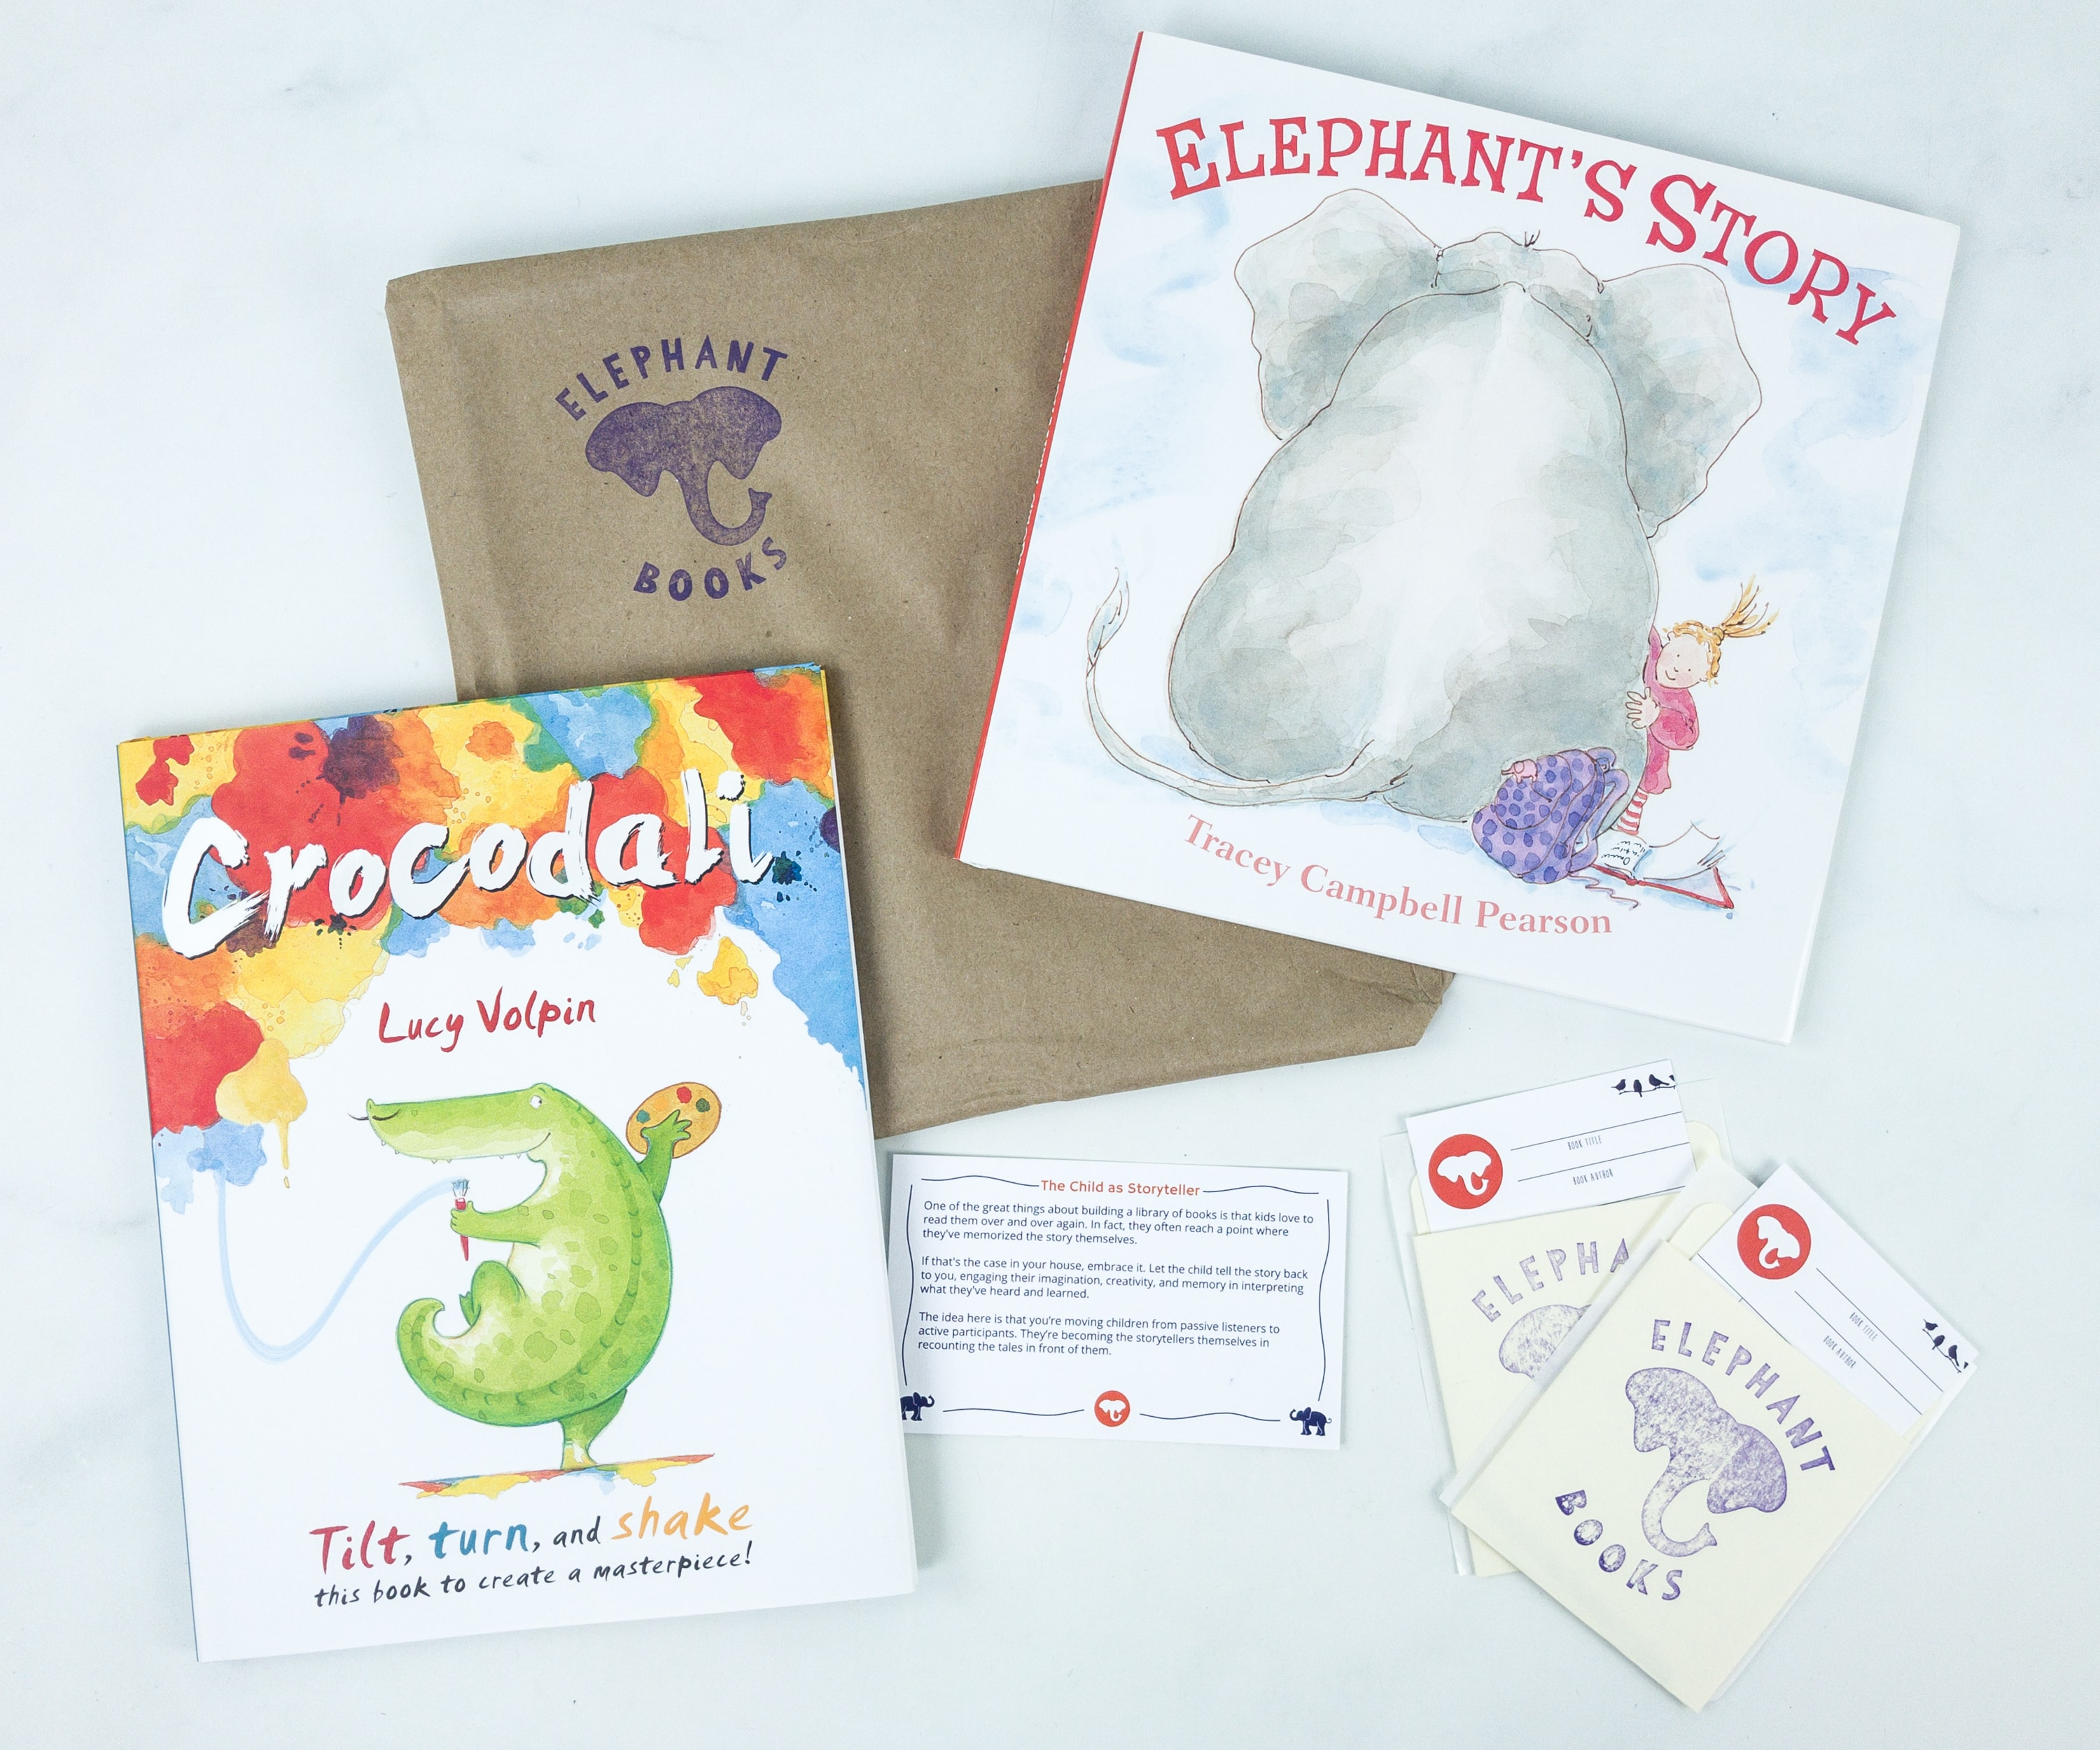 Elephant Books August 2019 Subscription Box Reviews – PICTURE BOOKS